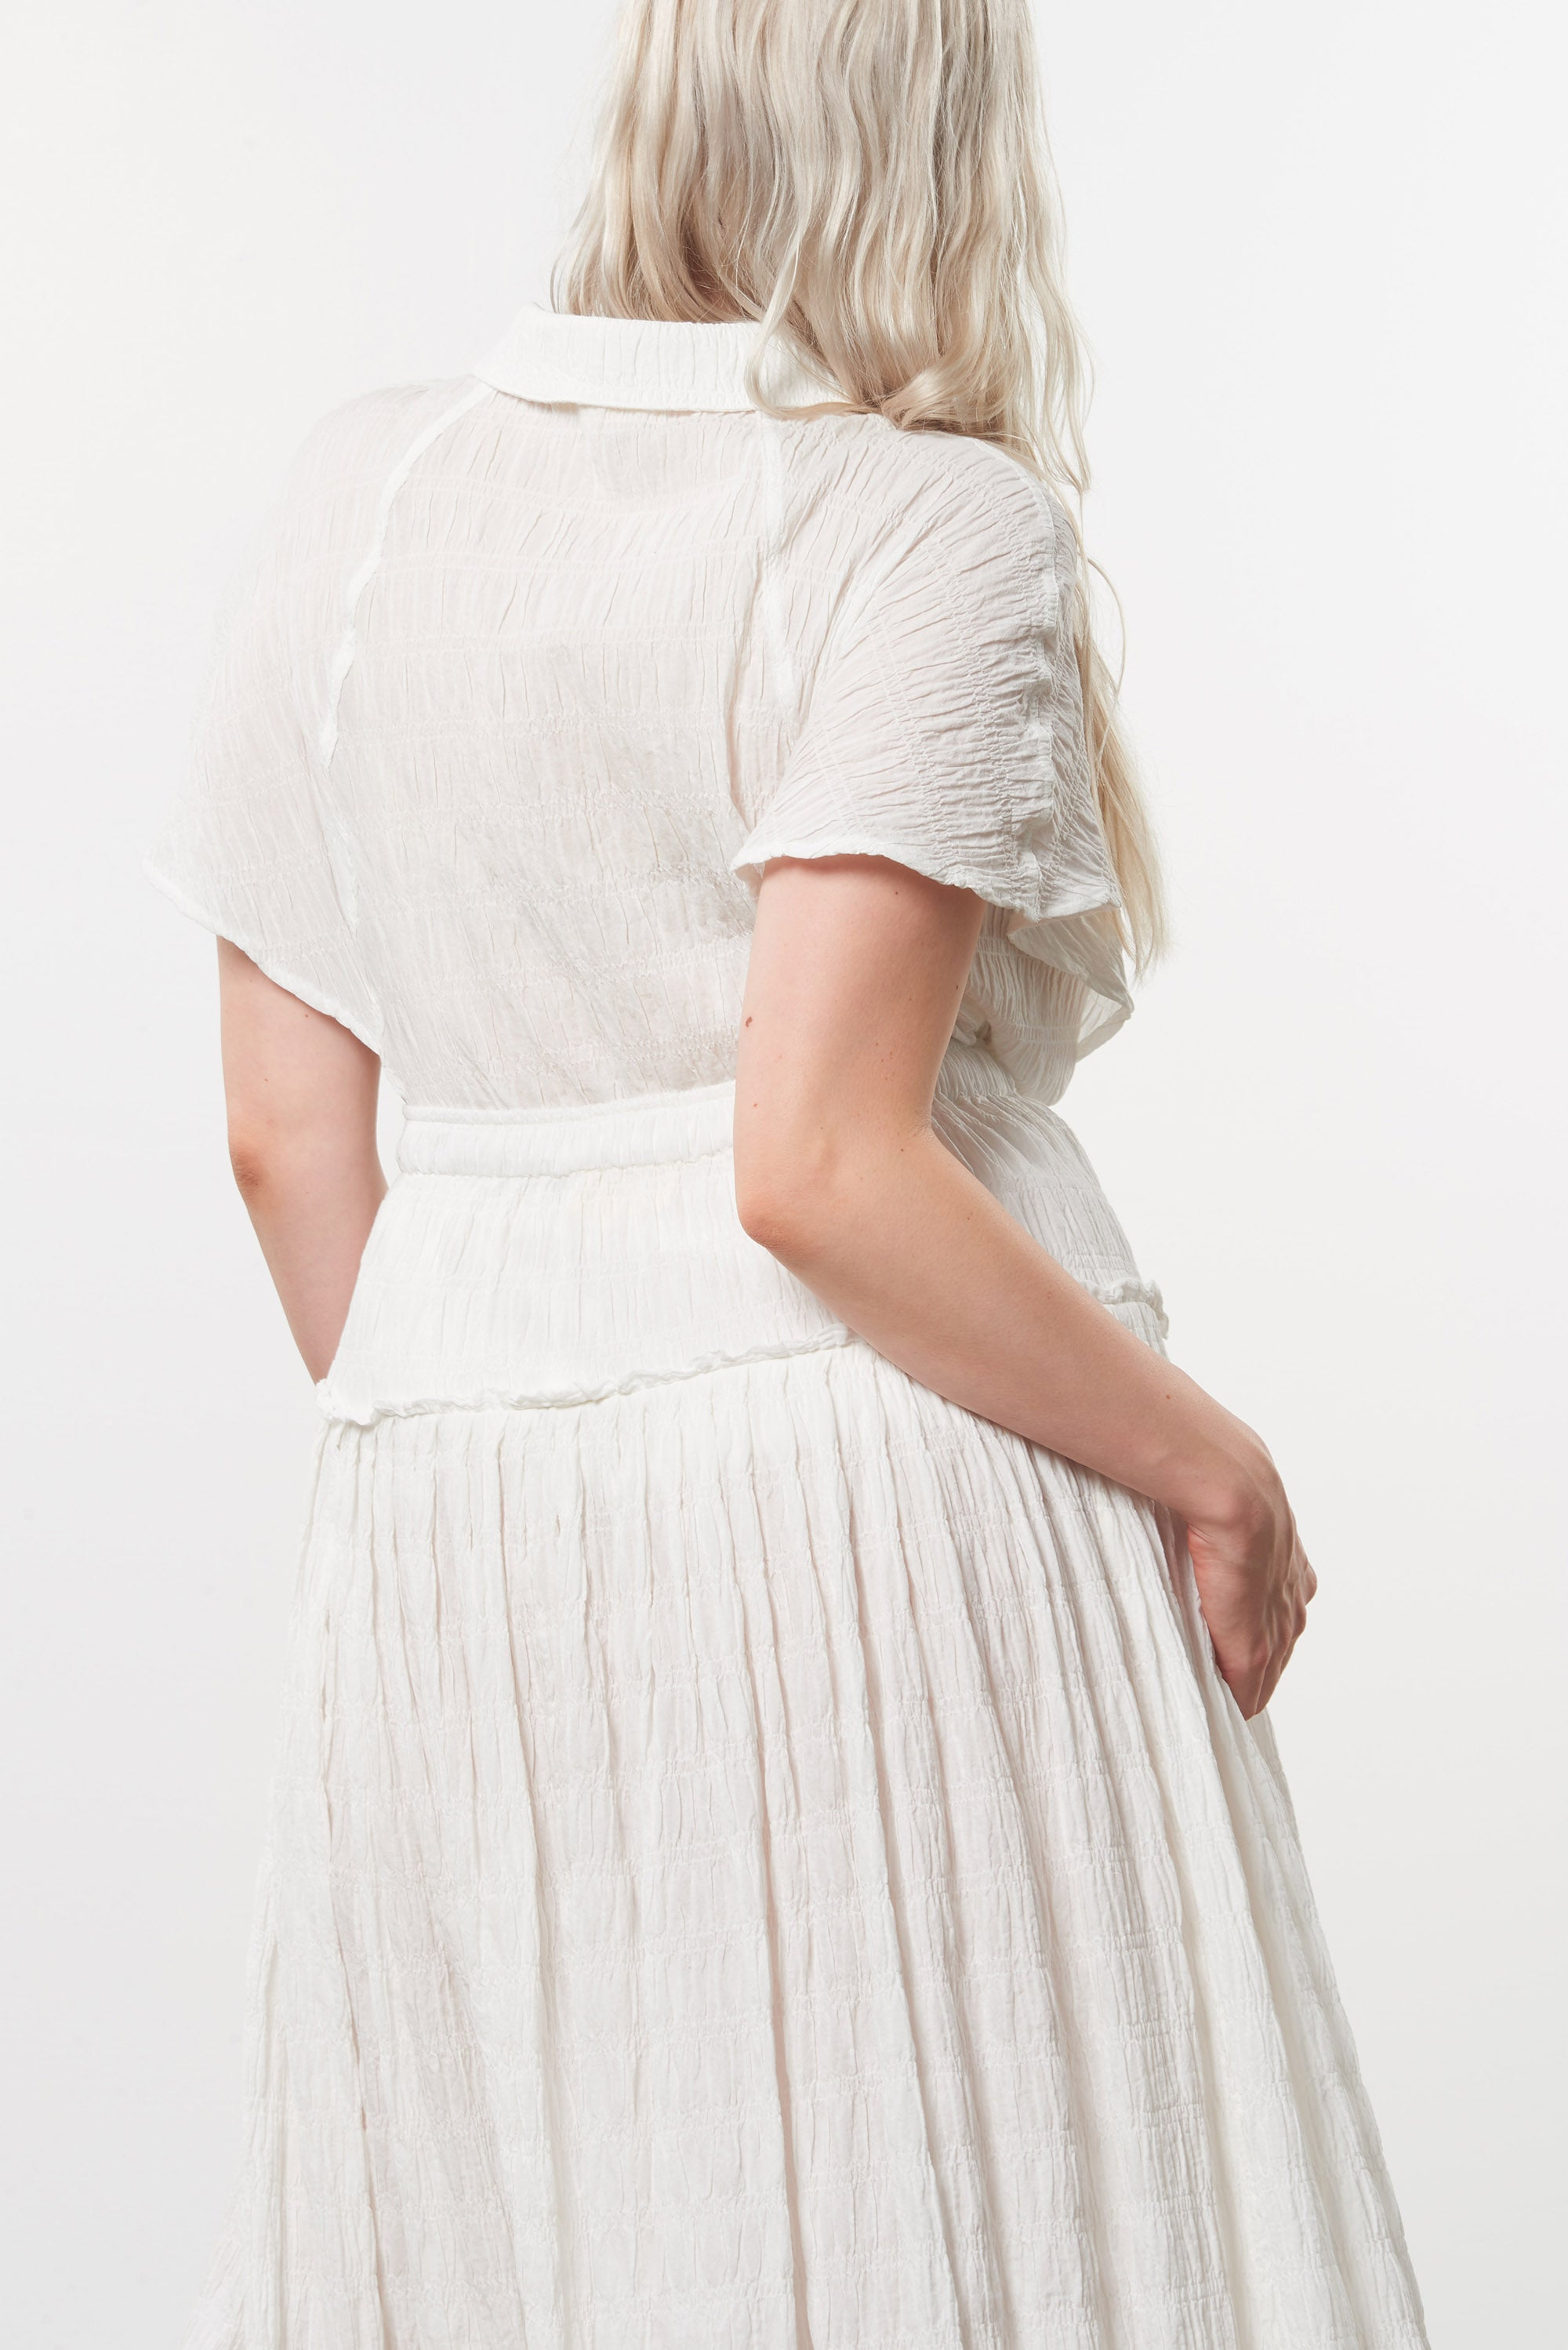 Mara Hoffman Extended White Alejandra Skirt in organic cotton (back detail)